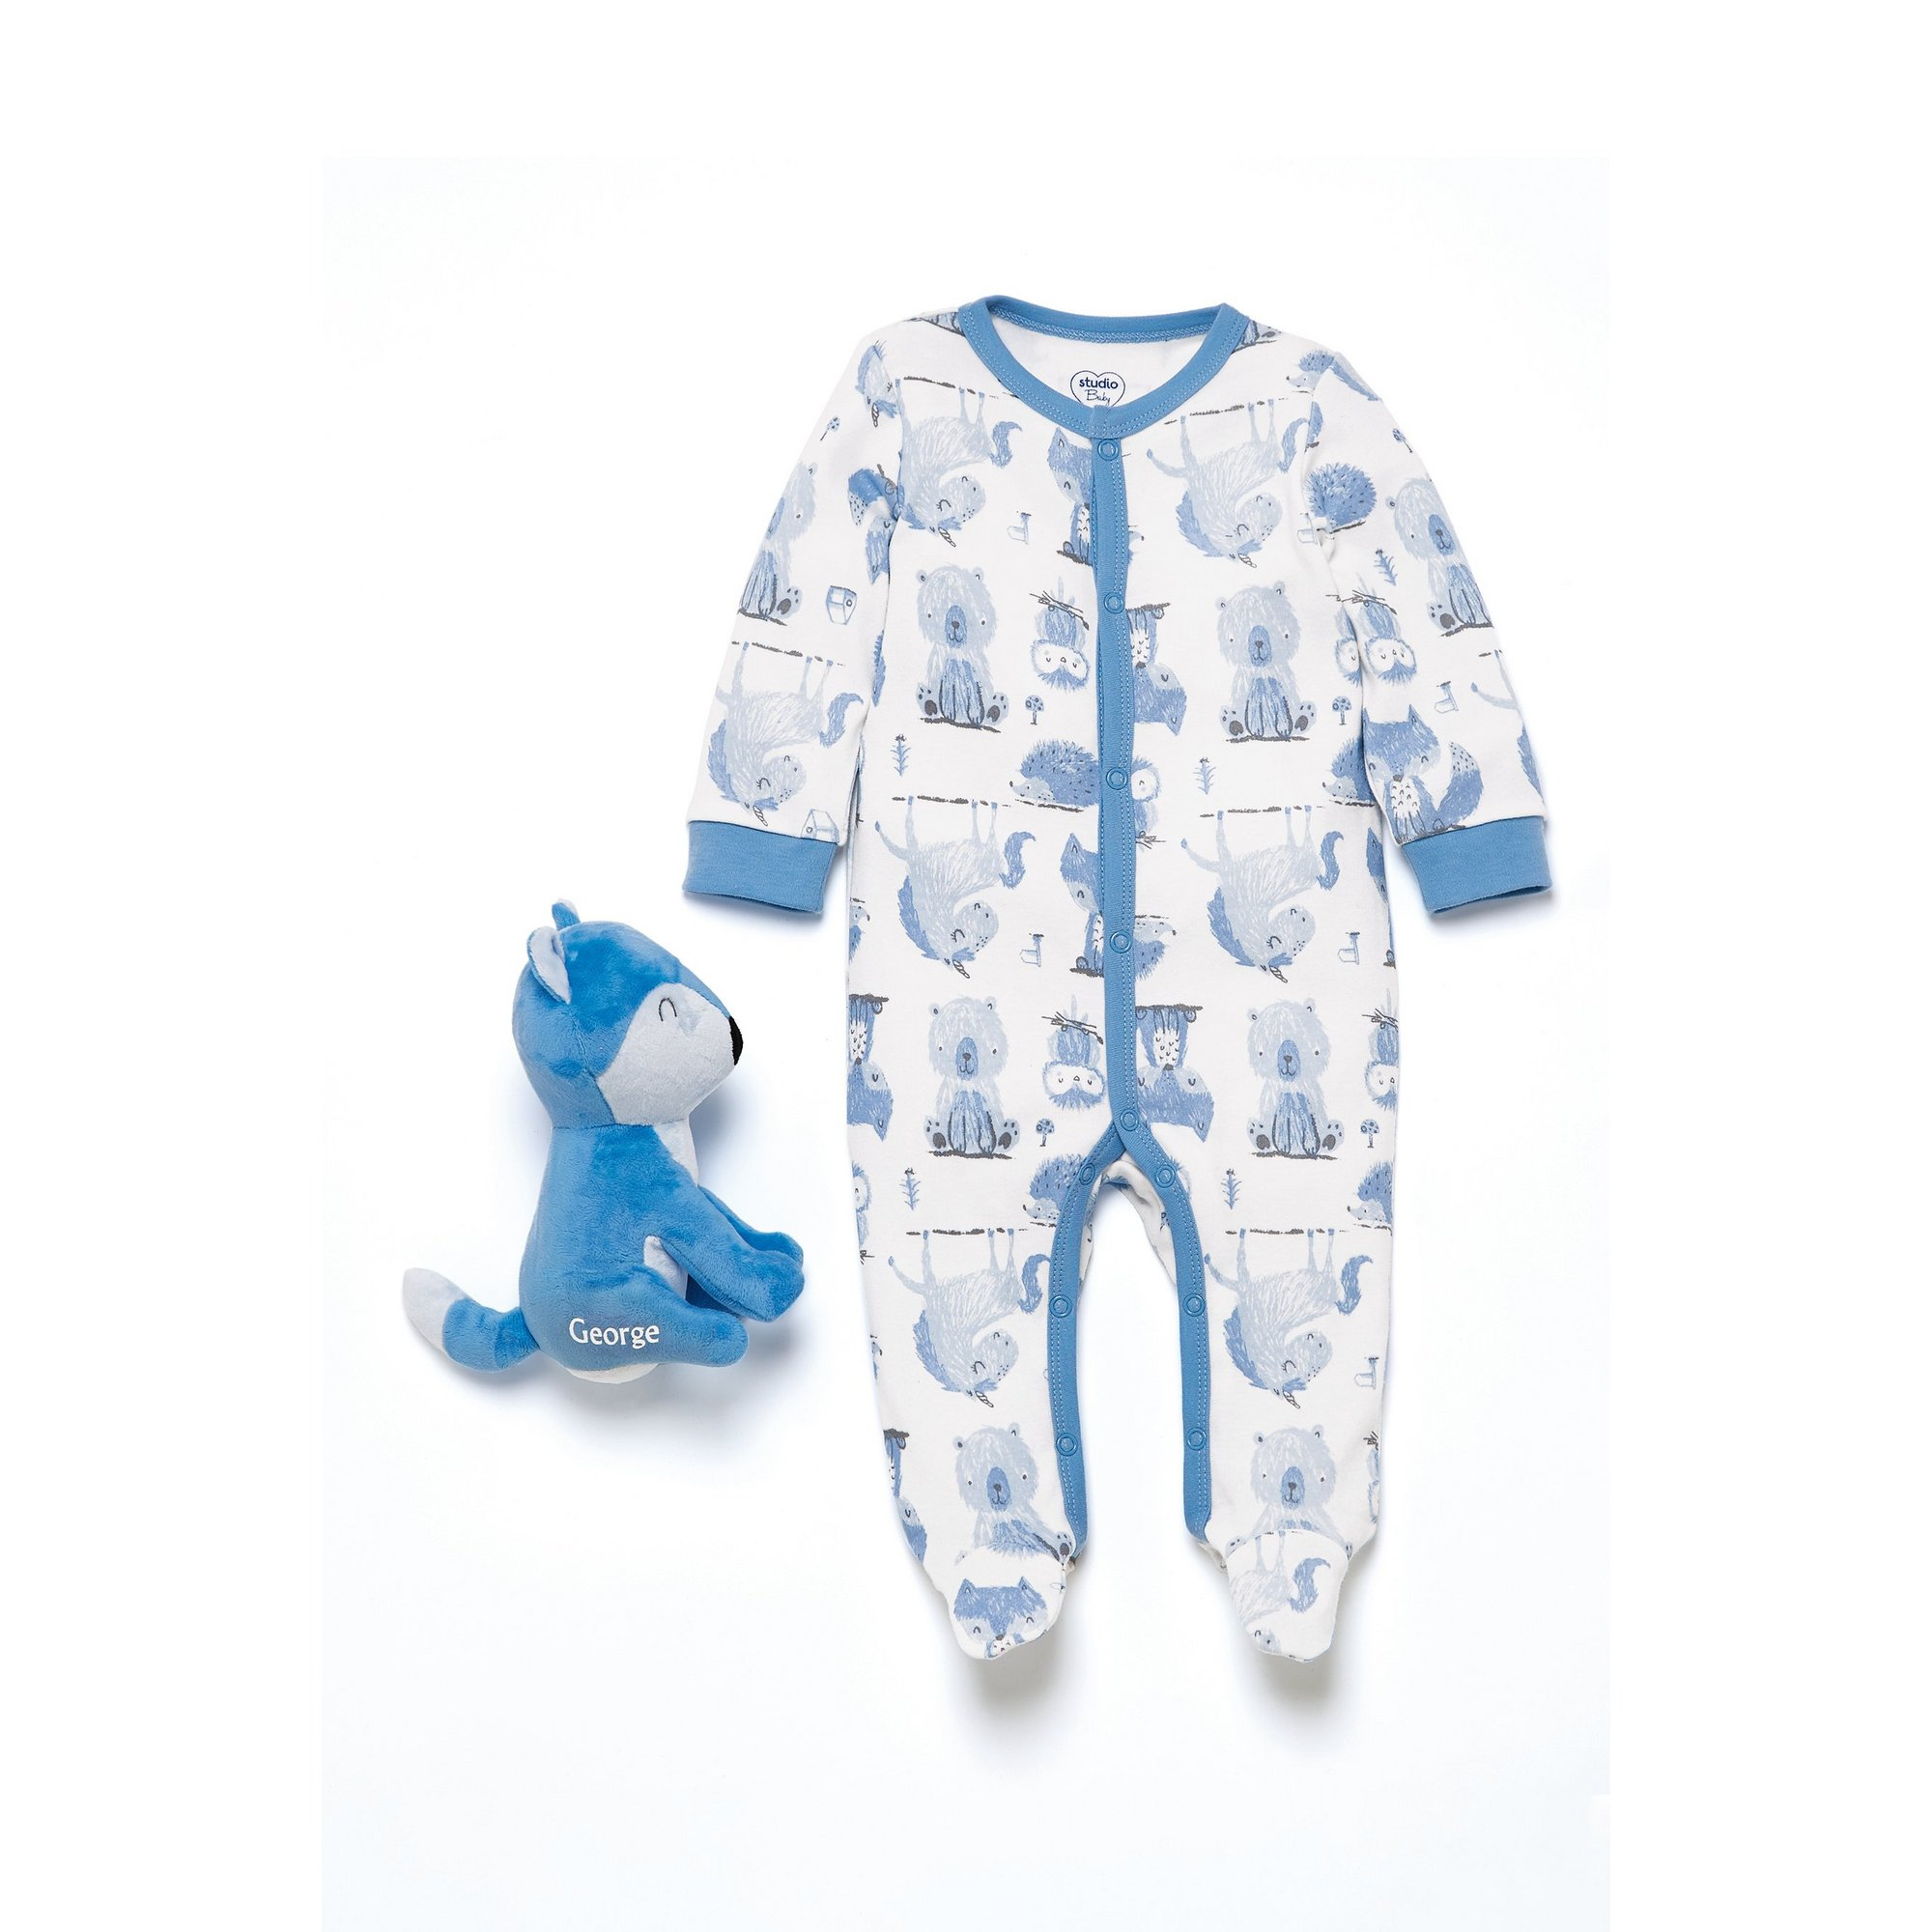 Image of Baby Boys 2 Piece Sleepsuit with Personalised Fox Toy